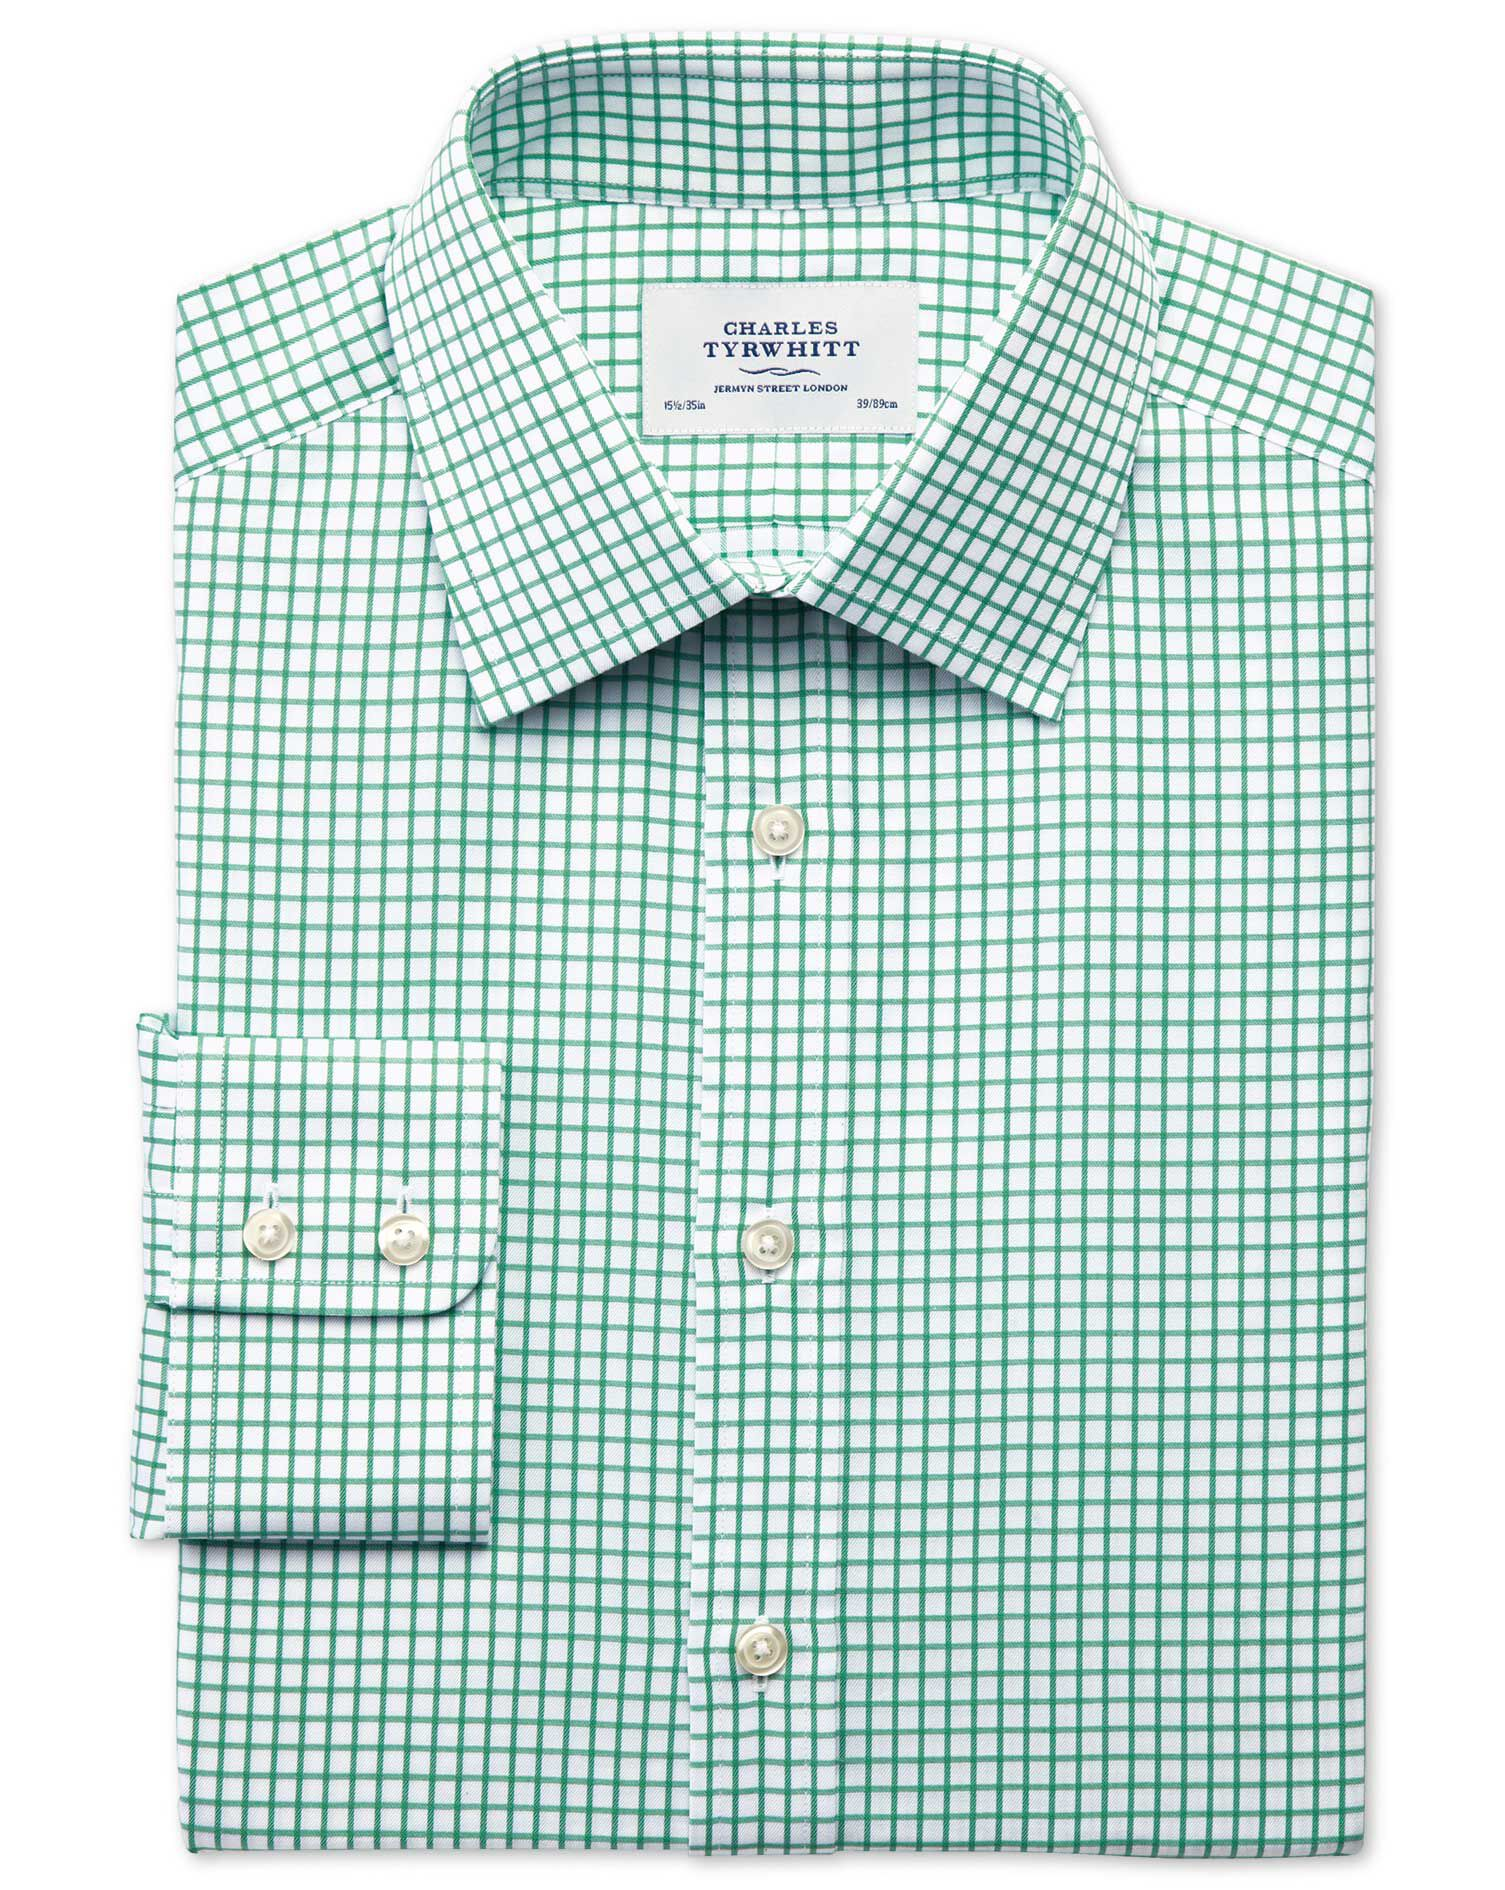 Slim Fit Twill Grid Check Green Cotton Formal Shirt Single Cuff Size 17.5/34 by Charles Tyrwhitt